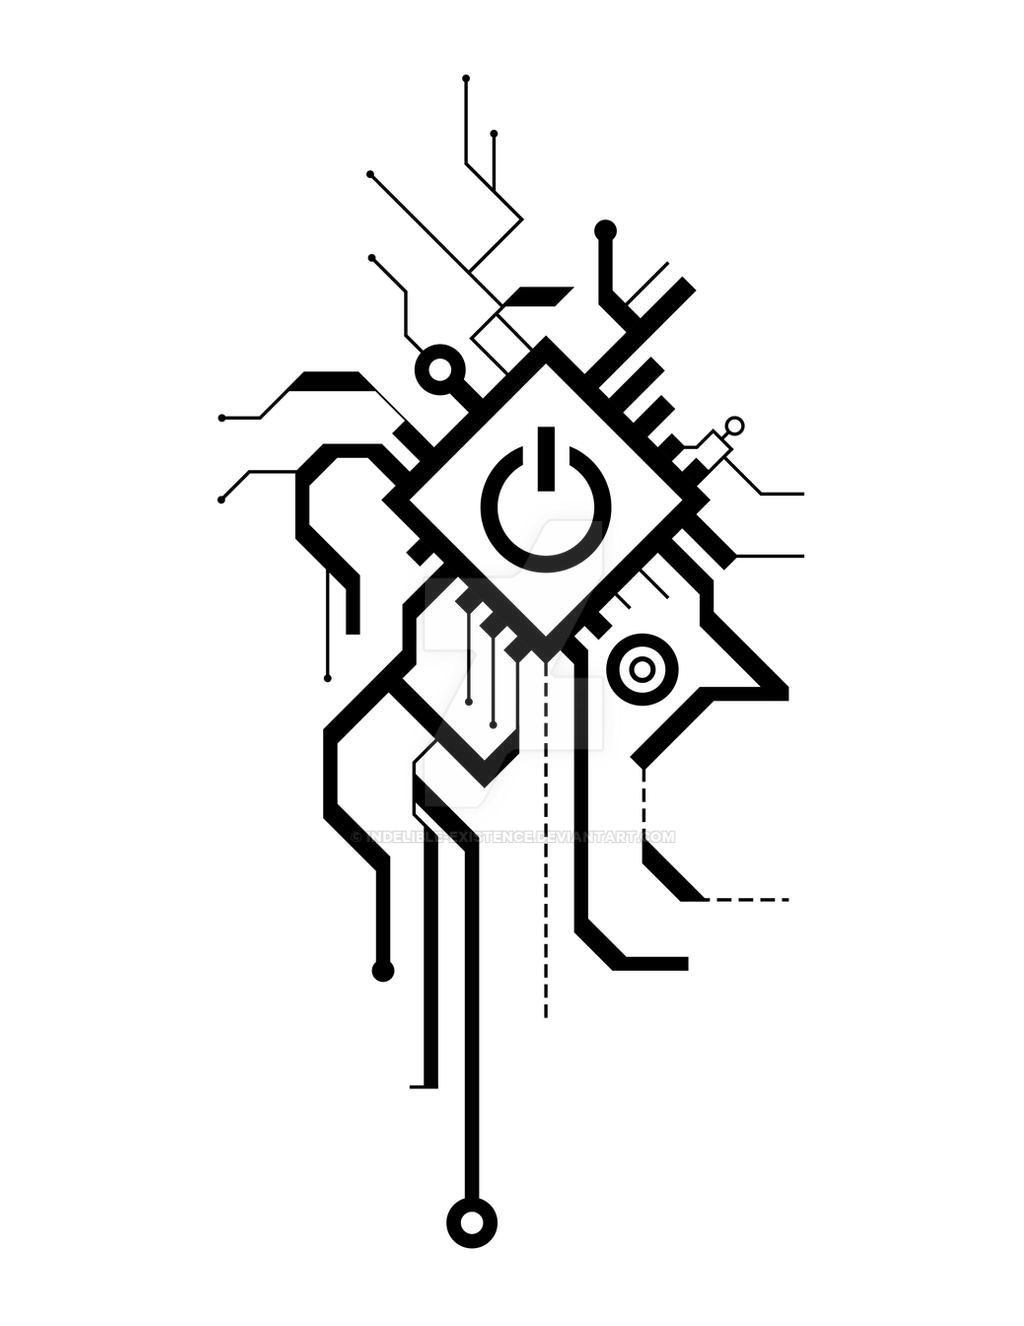 Circuit tattoo by indelible-existence on DeviantArt